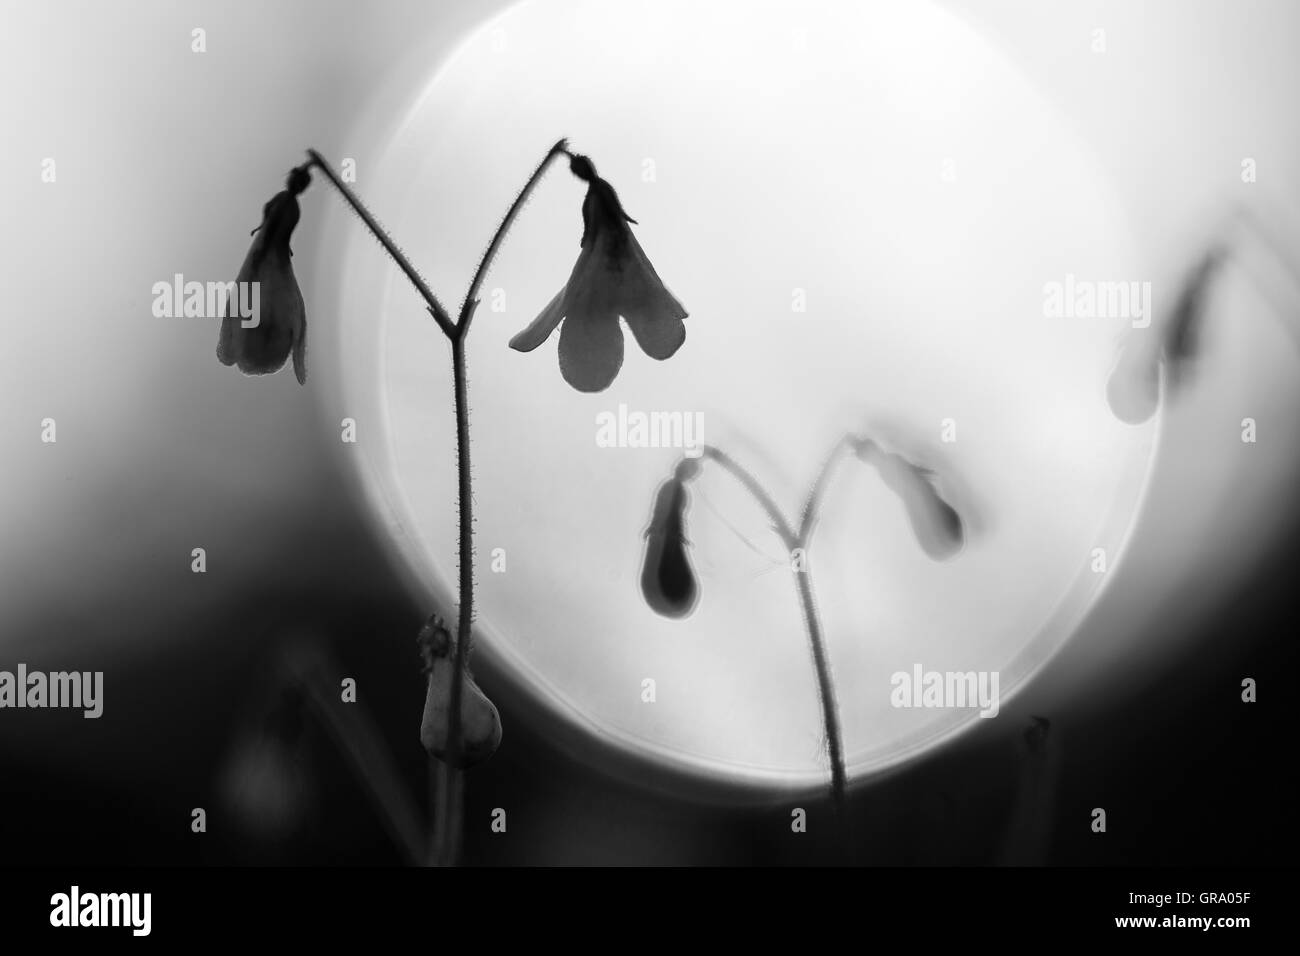 Backlit Black And White Photo Of Twinflower Linnaea - Stock Image